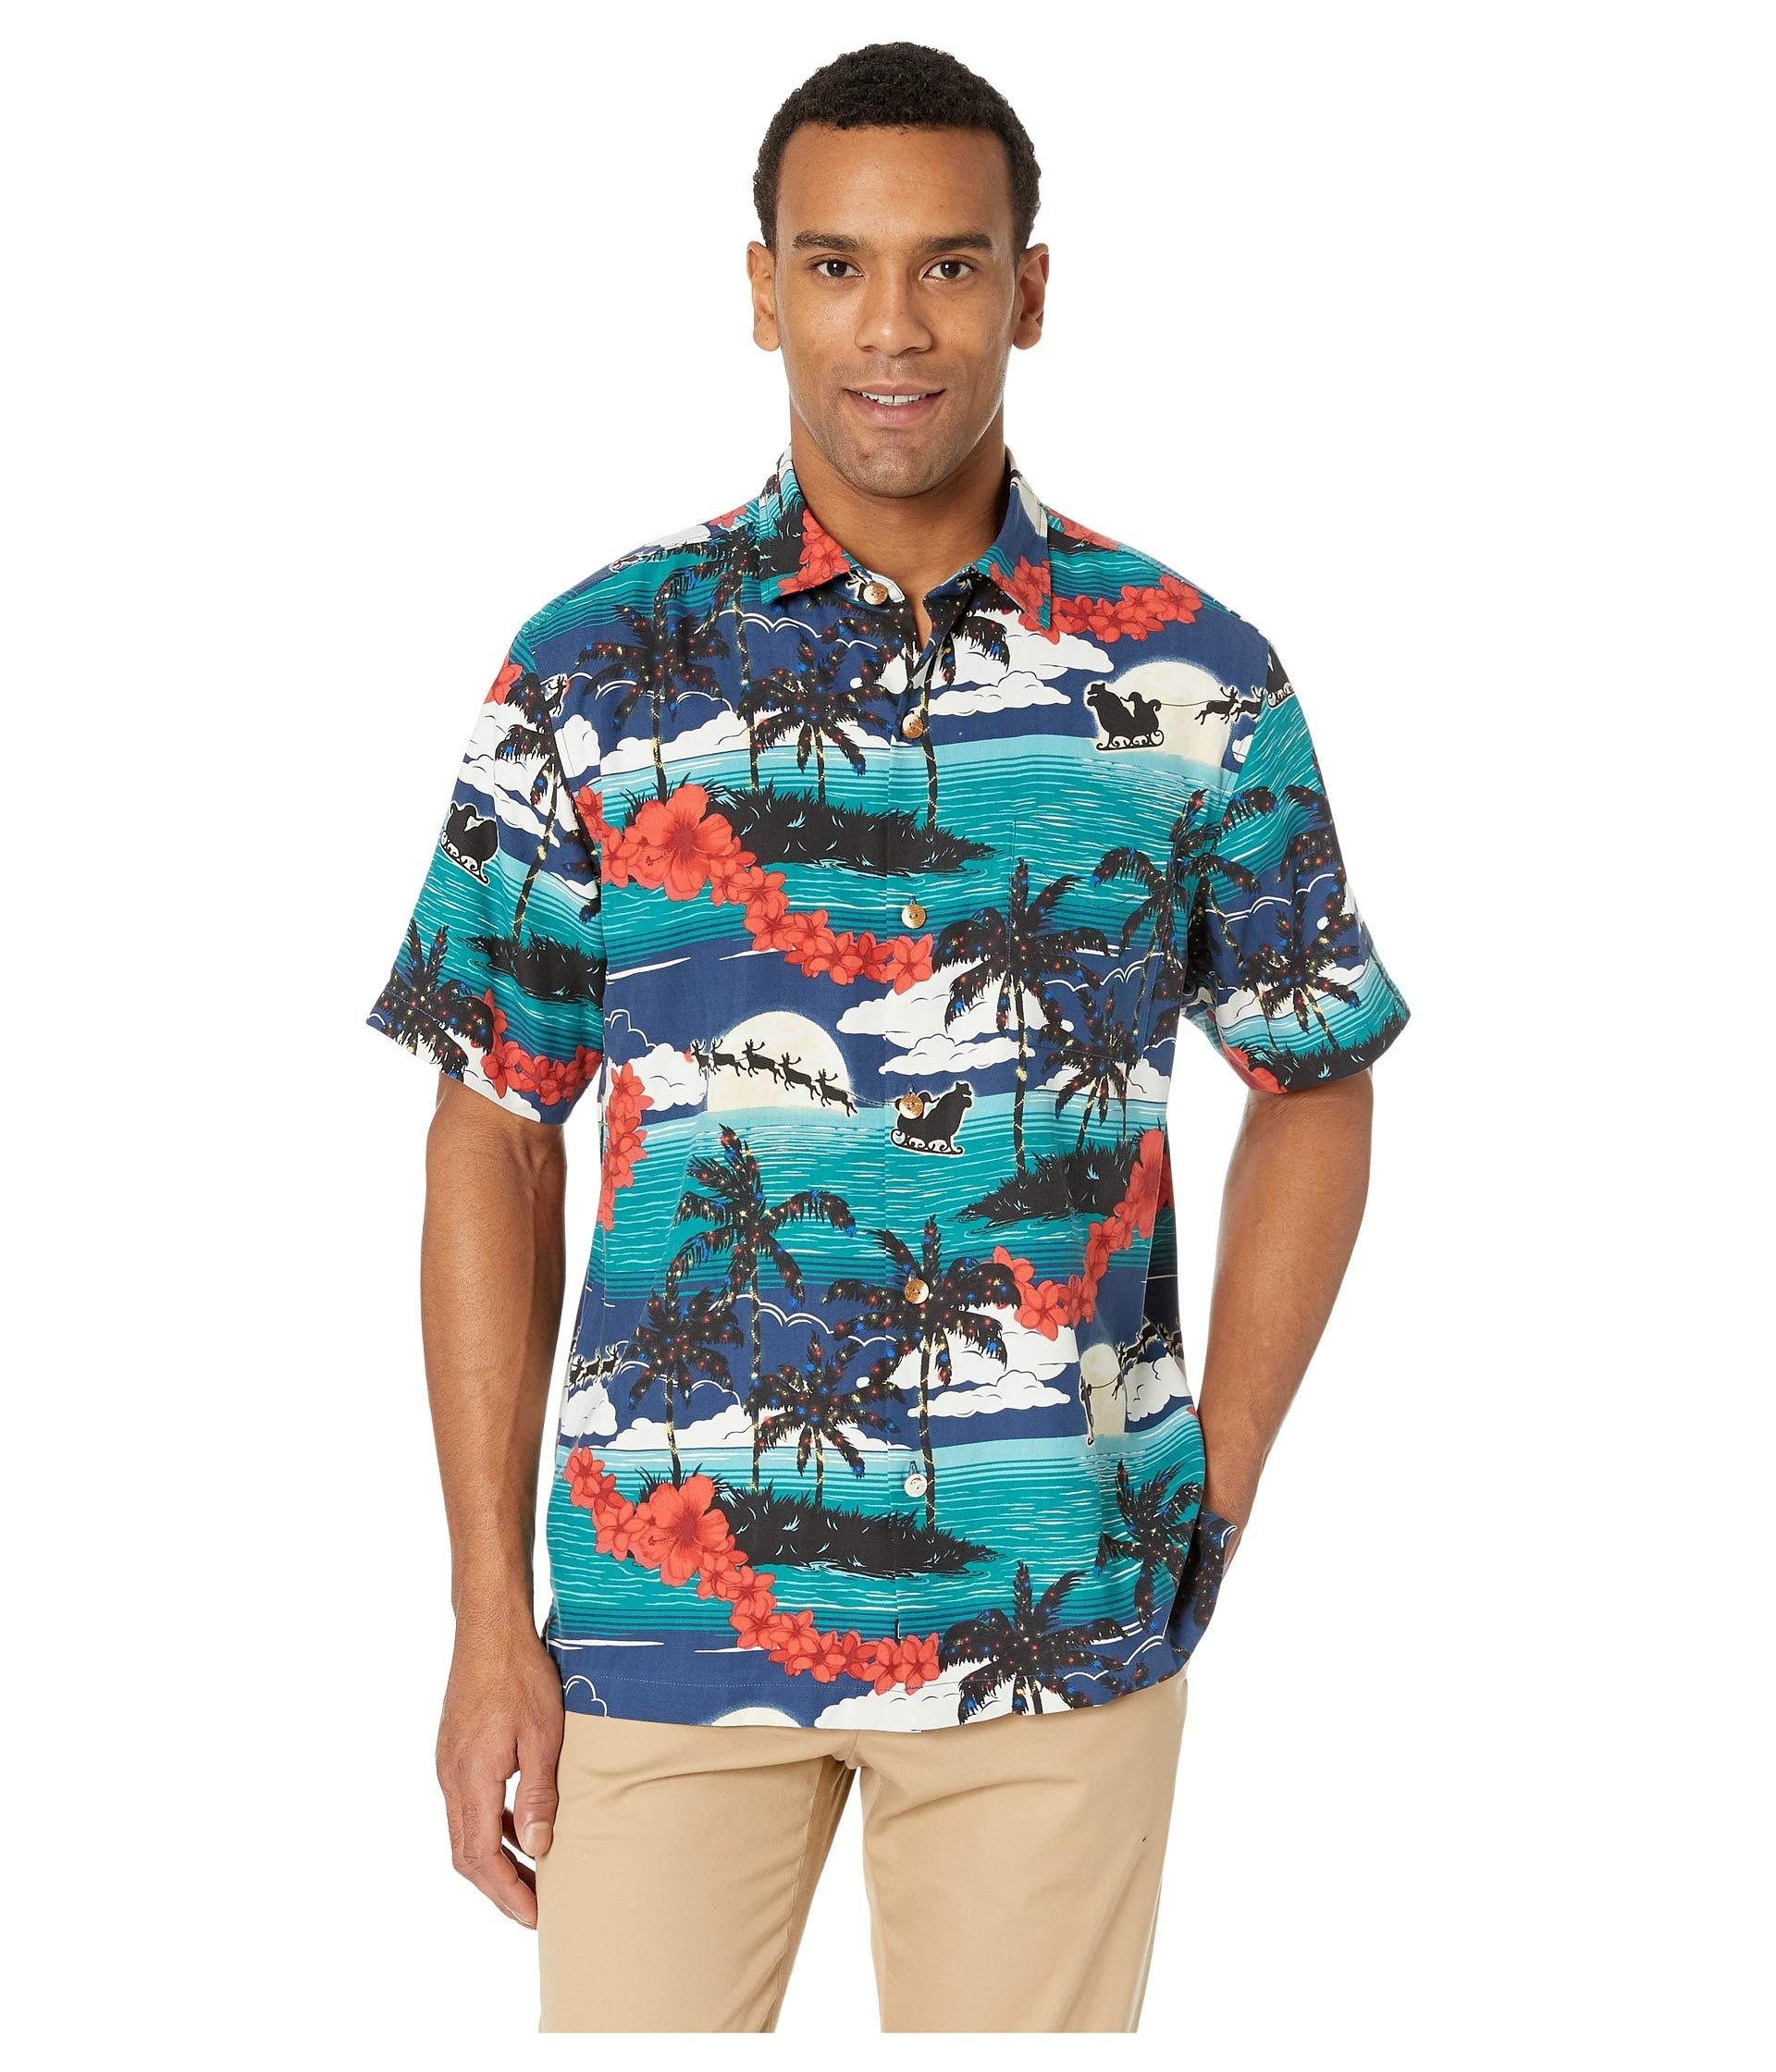 829a7448 Lyst - Tommy Bahama Moonlight In Paradise Shirt in Blue for Men